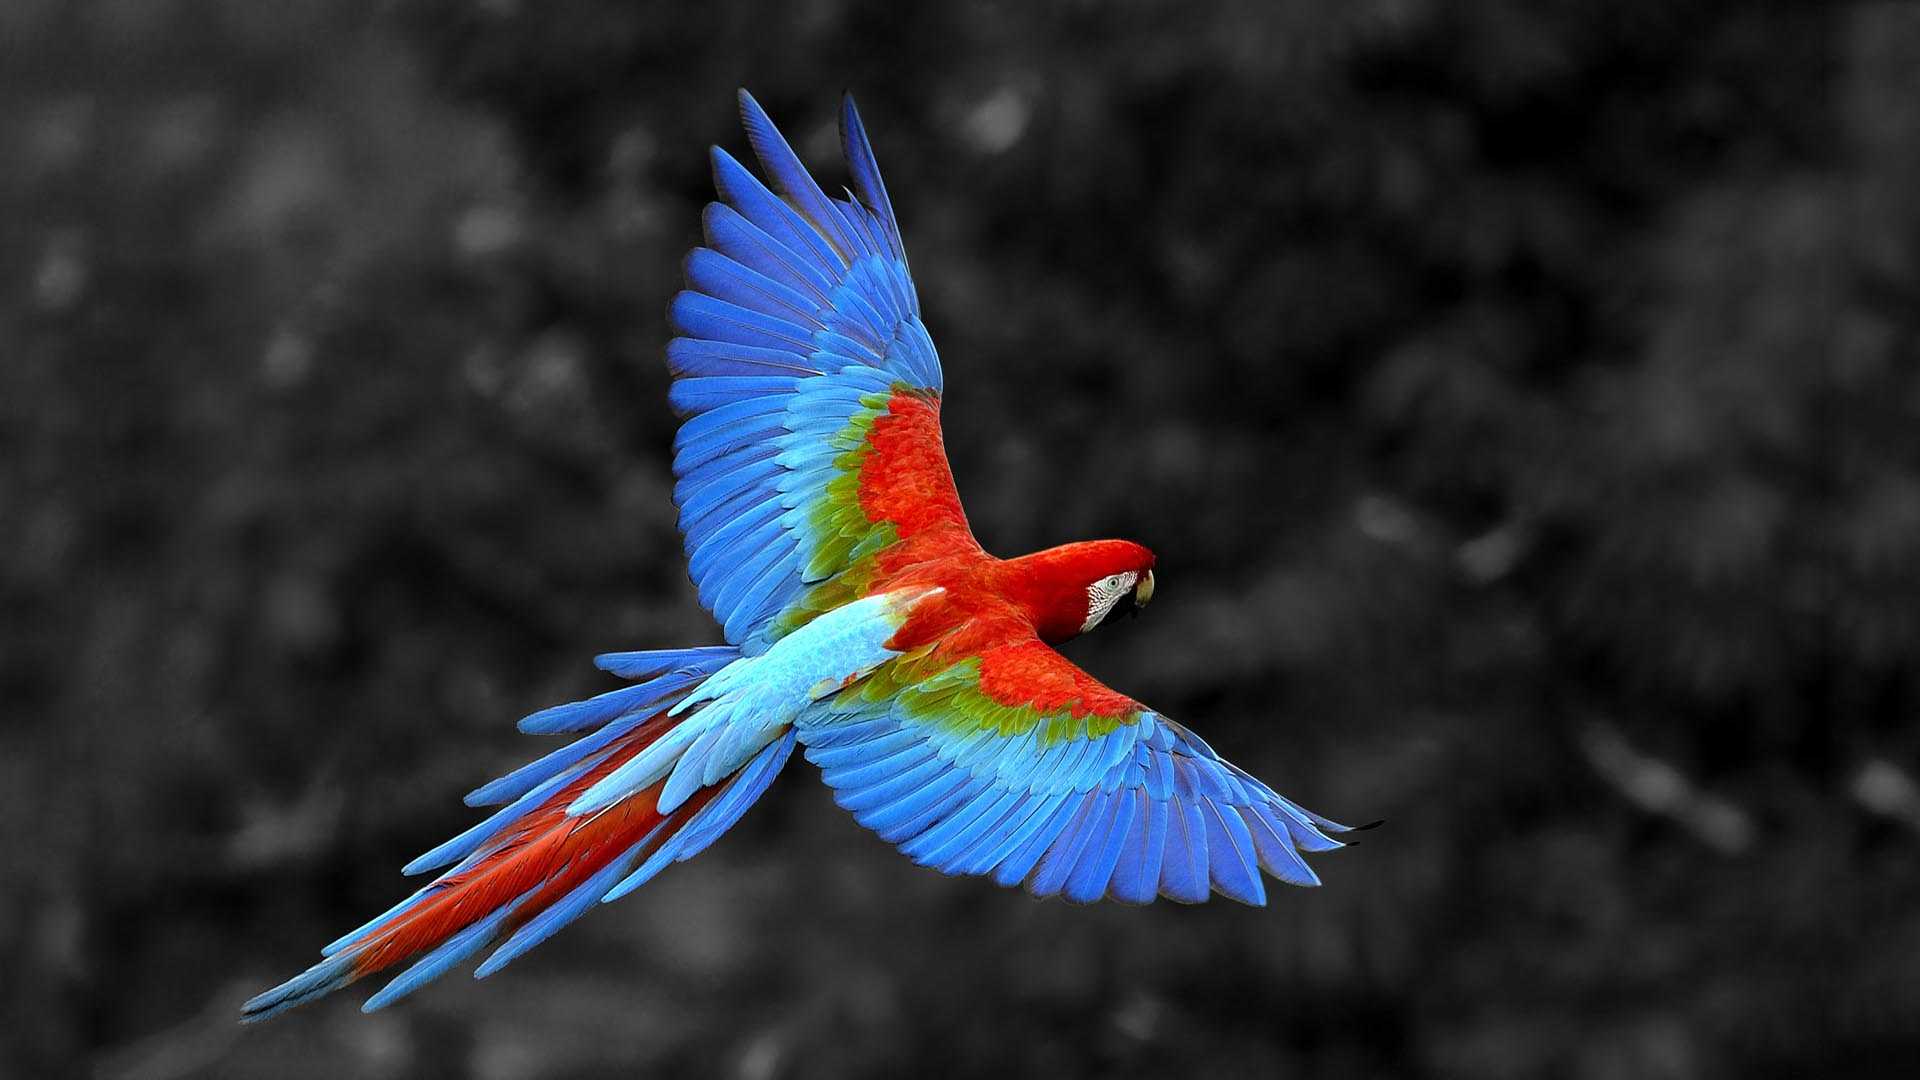 Parrot Wallpaper Animals background   WallpaperAsk 1920x1080